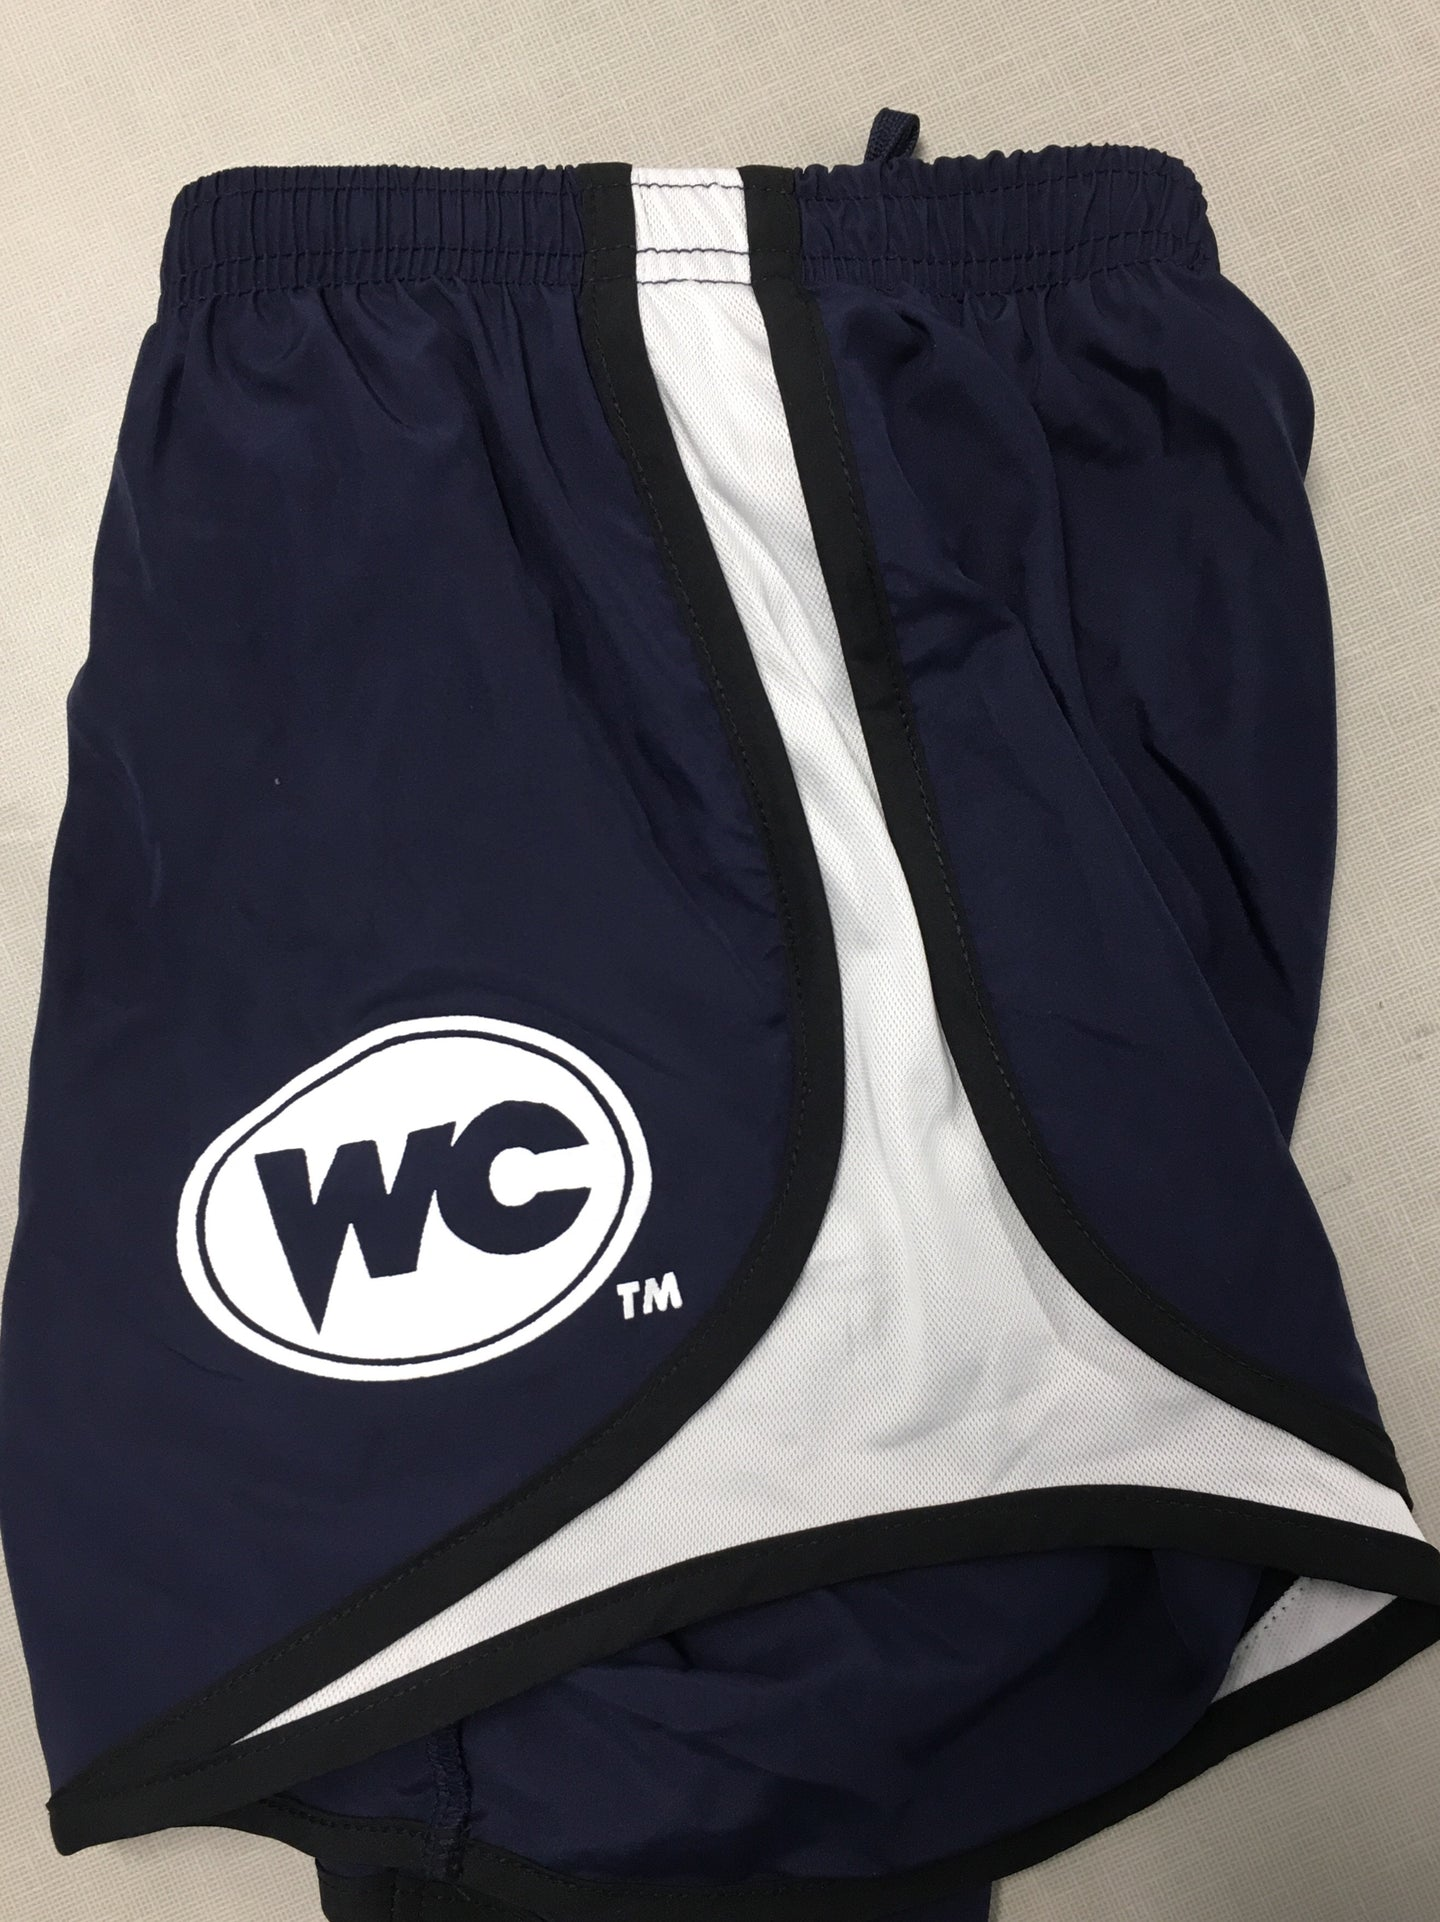 Women's Athletic Shorts - WC - Navy